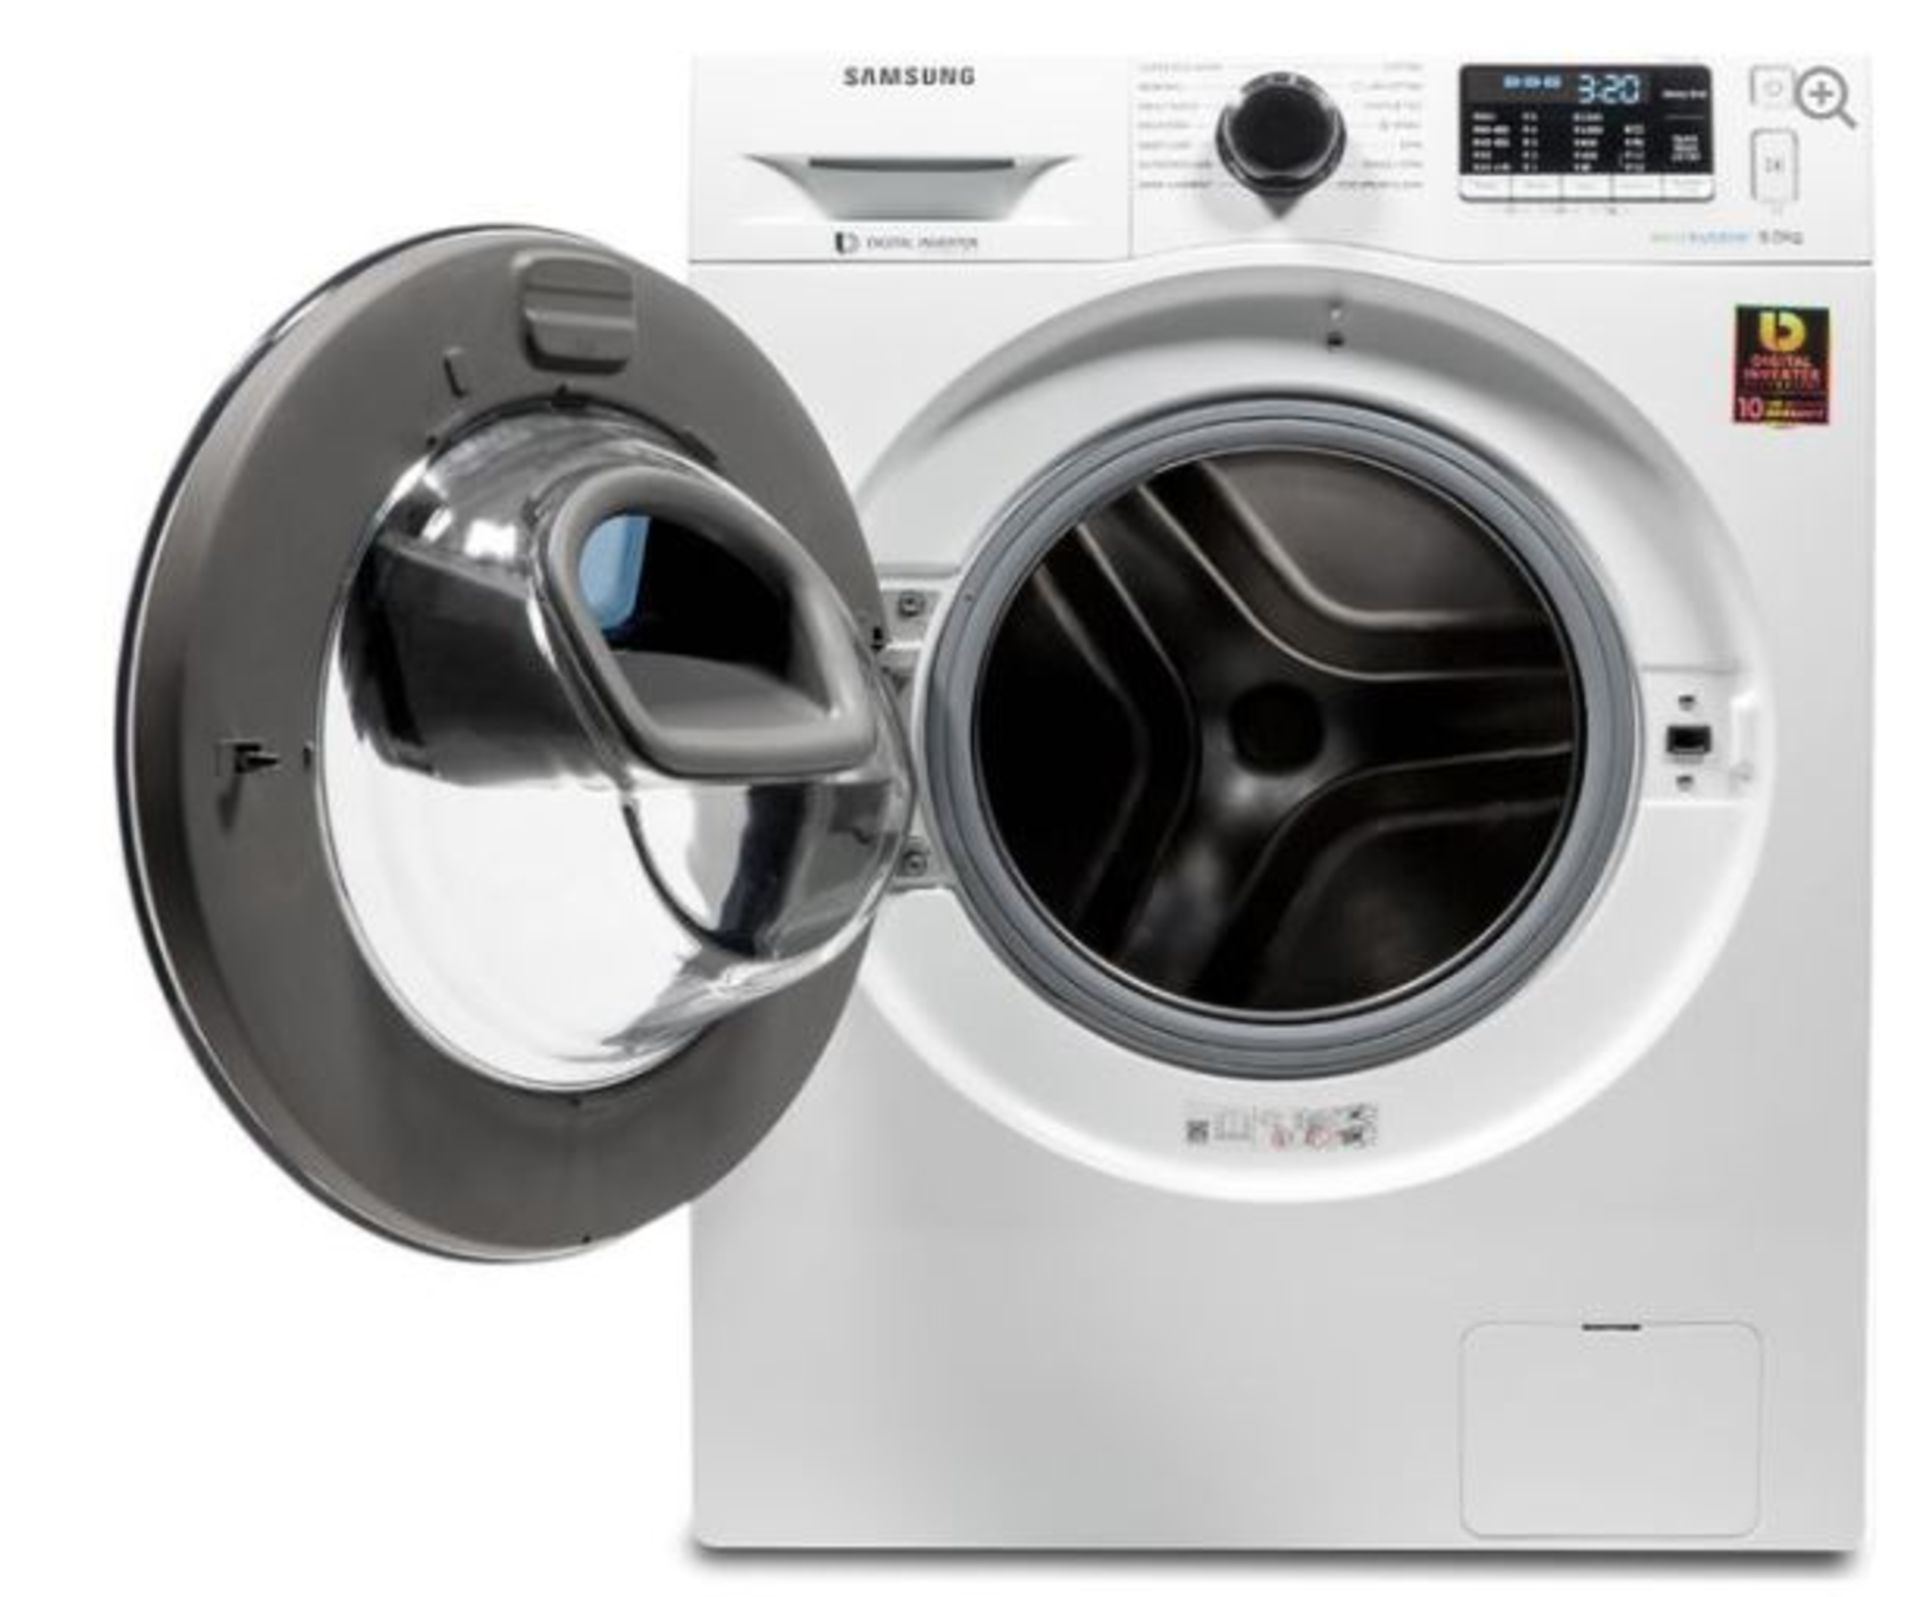 Pallet of 2 Samsung Premium Washing machines. Total Latest selling price £778* - Image 2 of 7